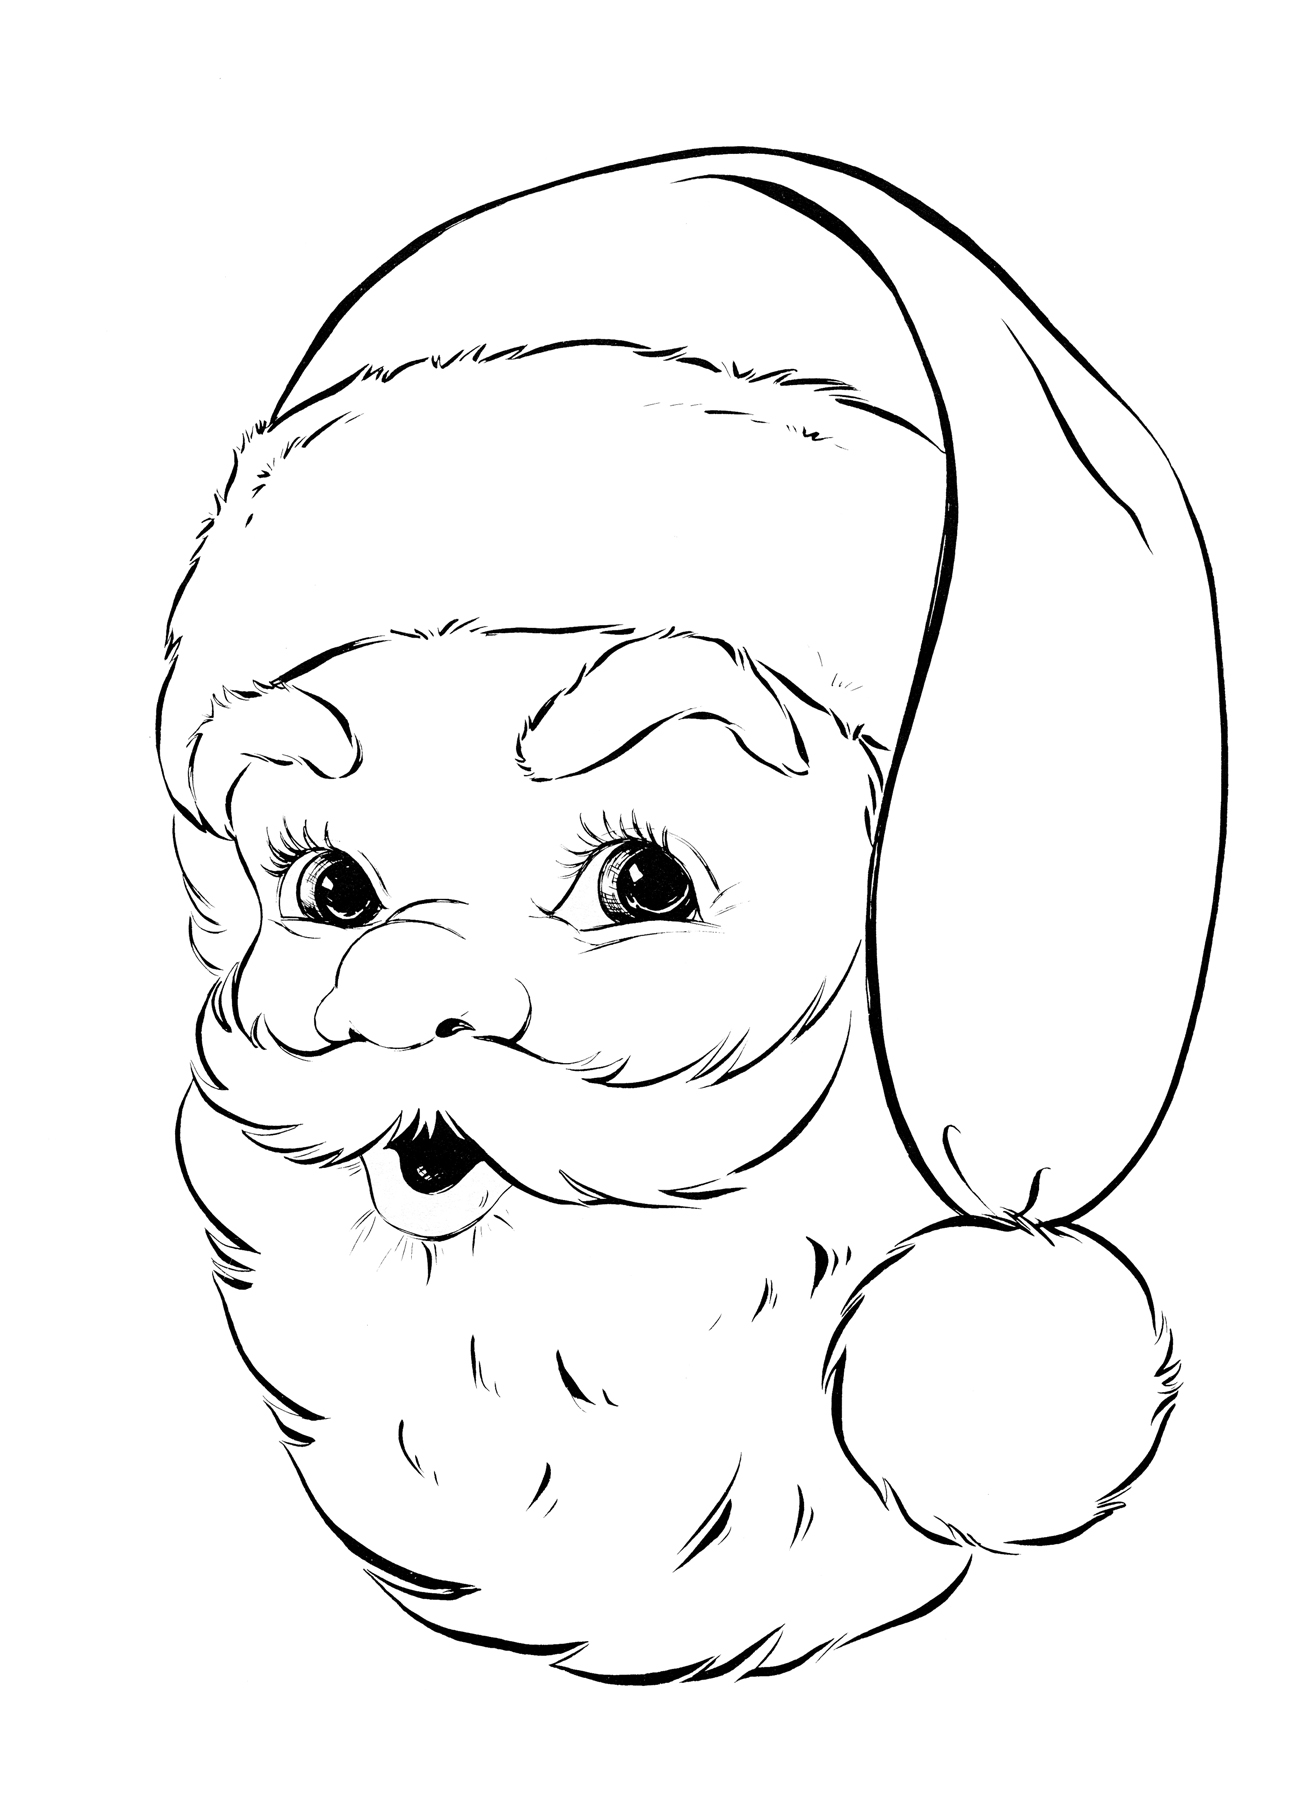 Free clipart 6 year old in black and white. Coloring pages collection of